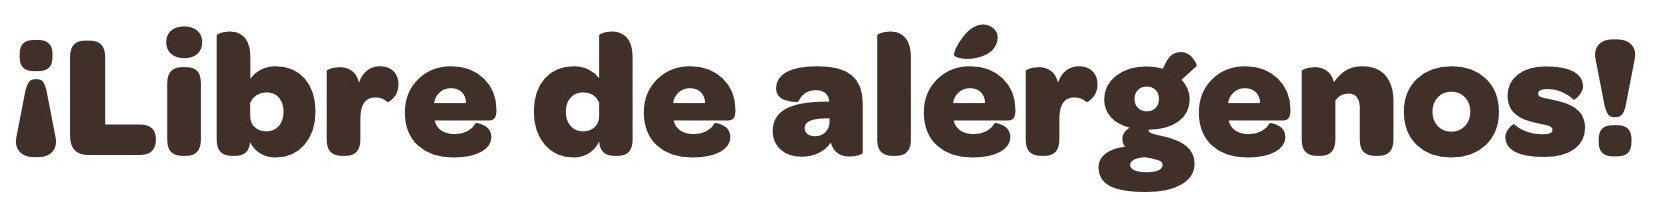 Which font is this